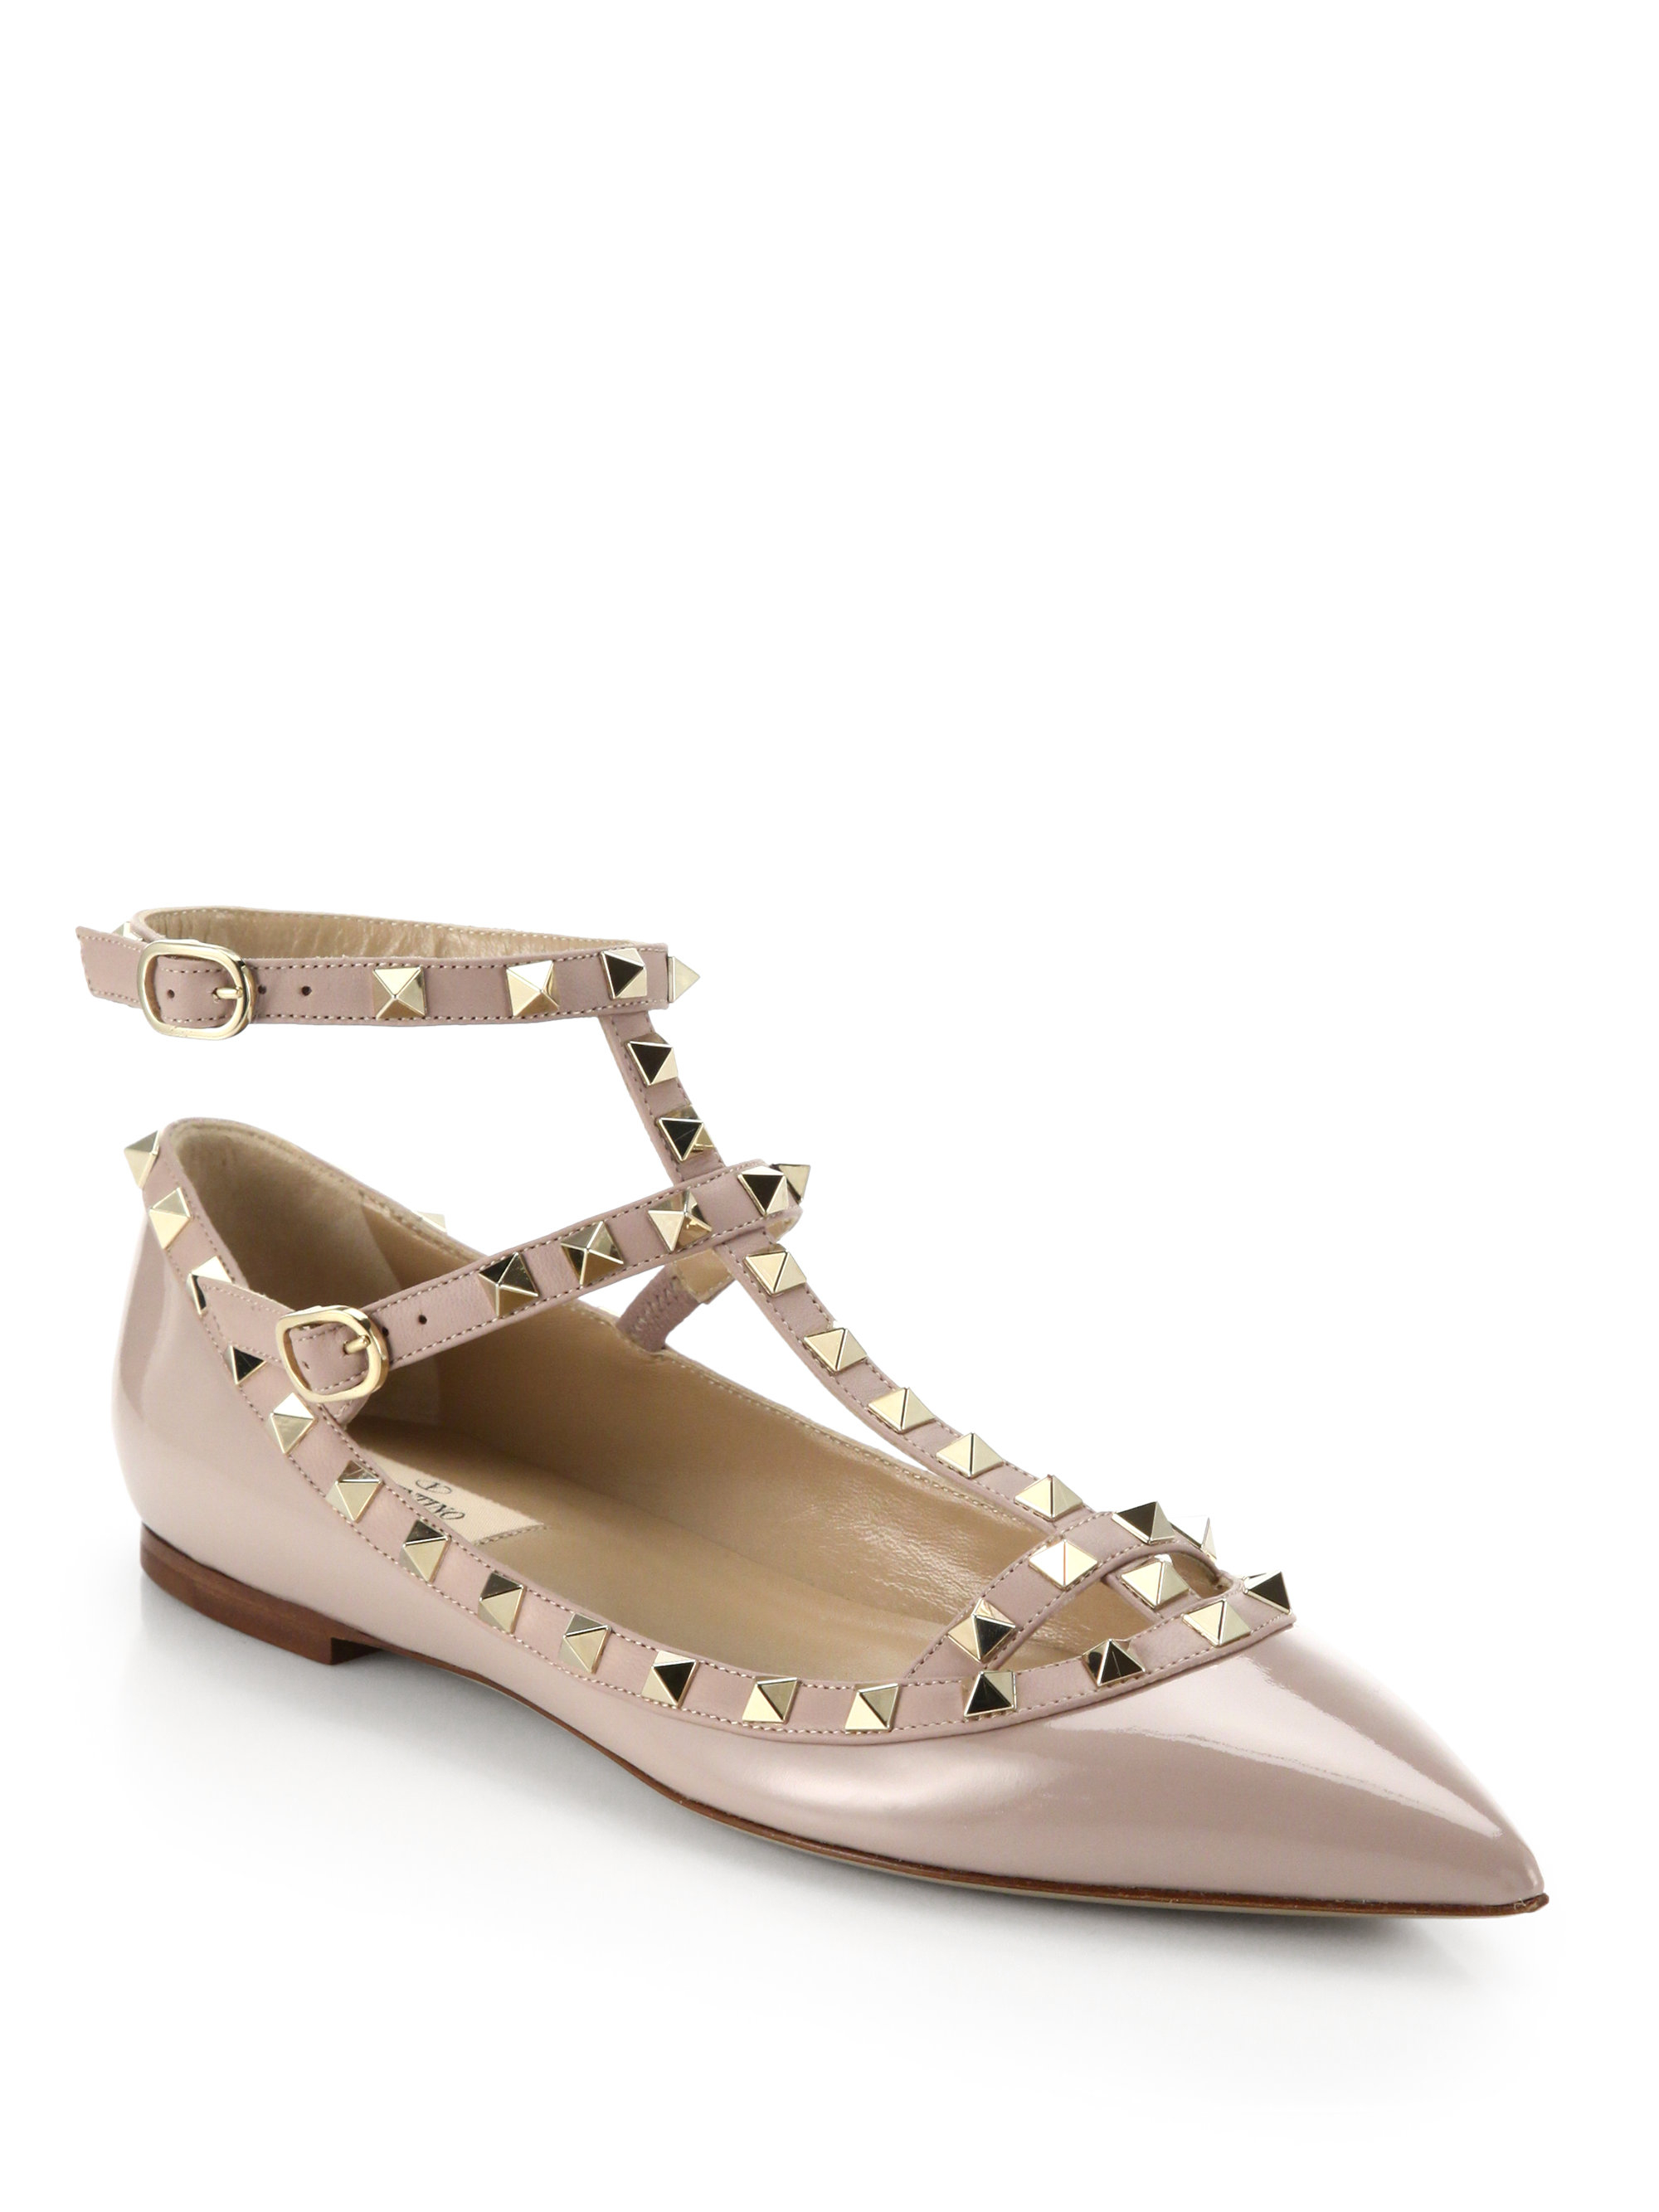 Valentino Rockstud Patent Cage Flats in Pink (blush) | Lyst